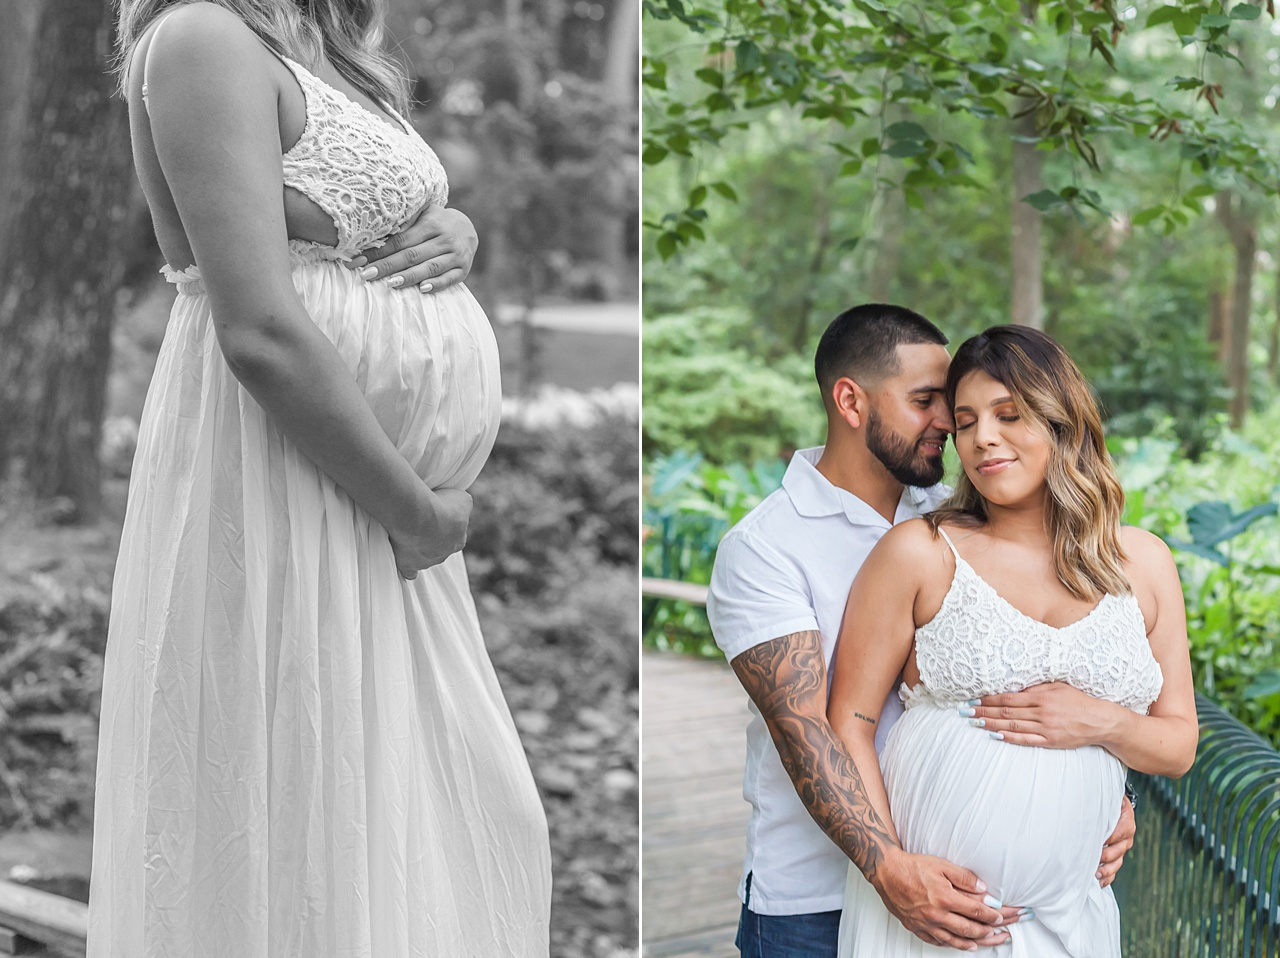 pretty maternity photo shoot outdoors in houston texas by kristal bean photography